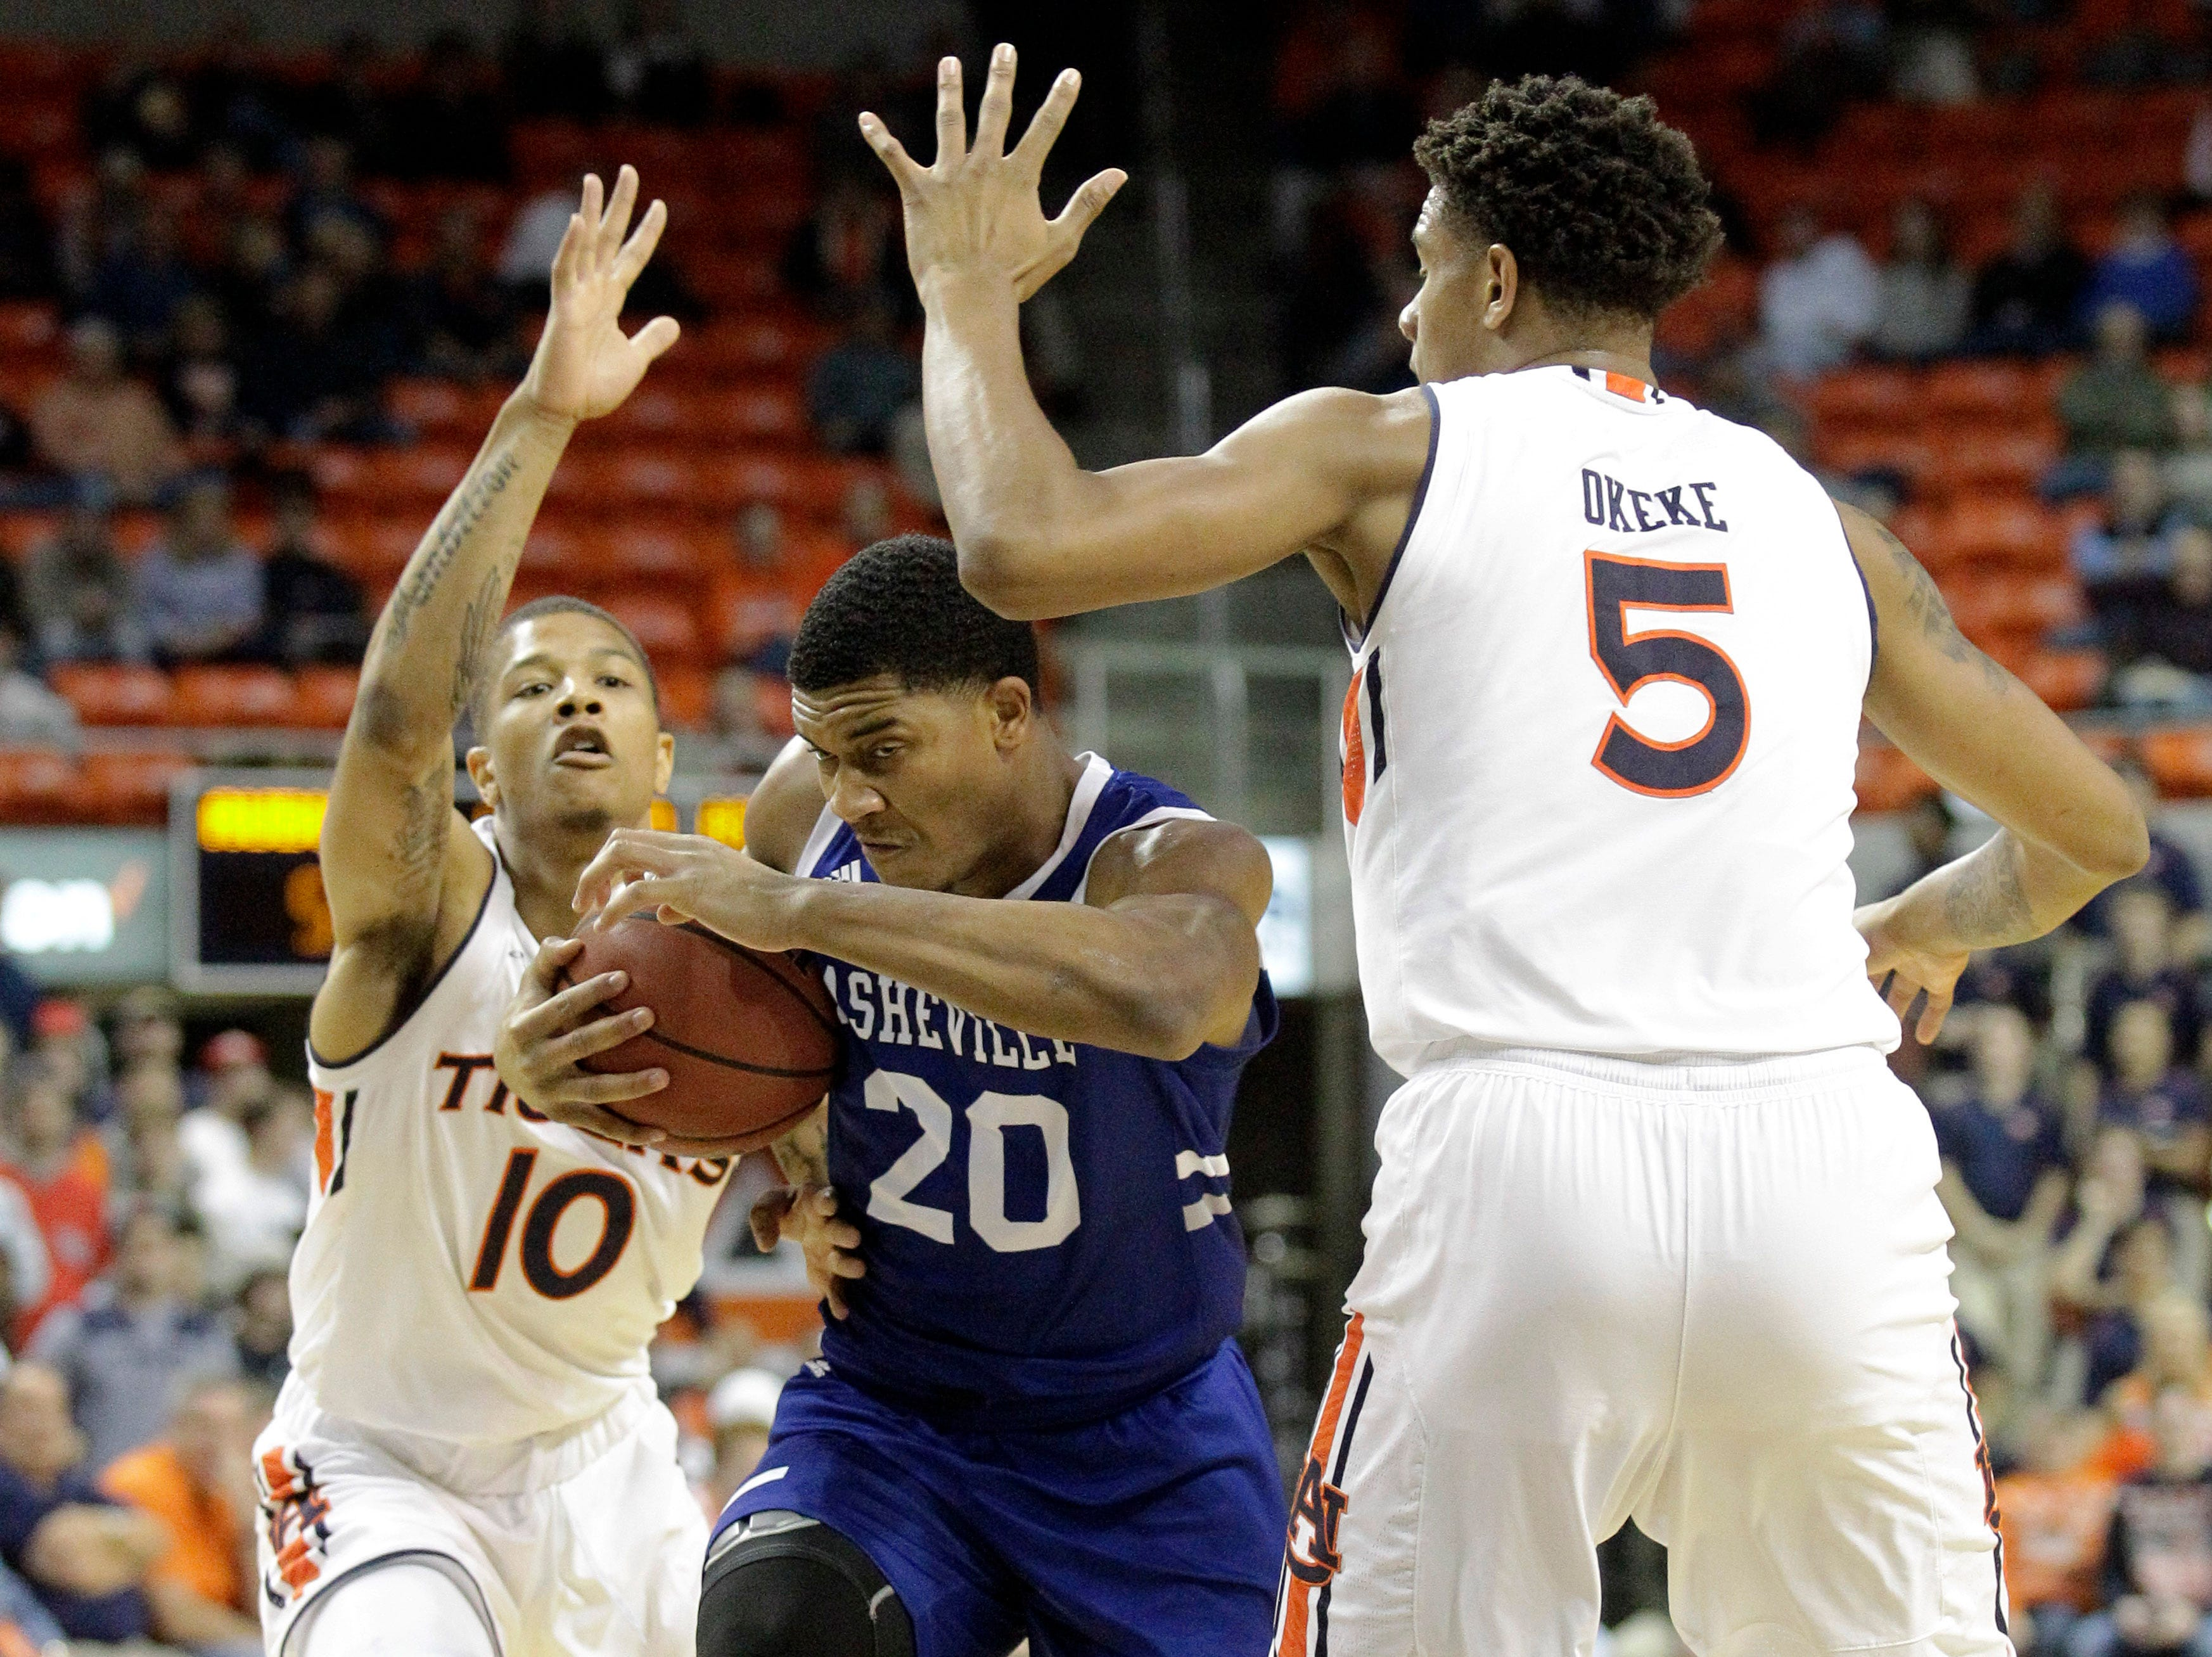 Dec 4, 2018; Auburn, AL, USA; Auburn Tigers guard Samir Doughty (10) and forward Chuma Okeke (5) pressure UNC-Asheville Bulldogs guard DeVon Baker (20) during the first half at Auburn Arena. Mandatory Credit: John Reed-USA TODAY Sports